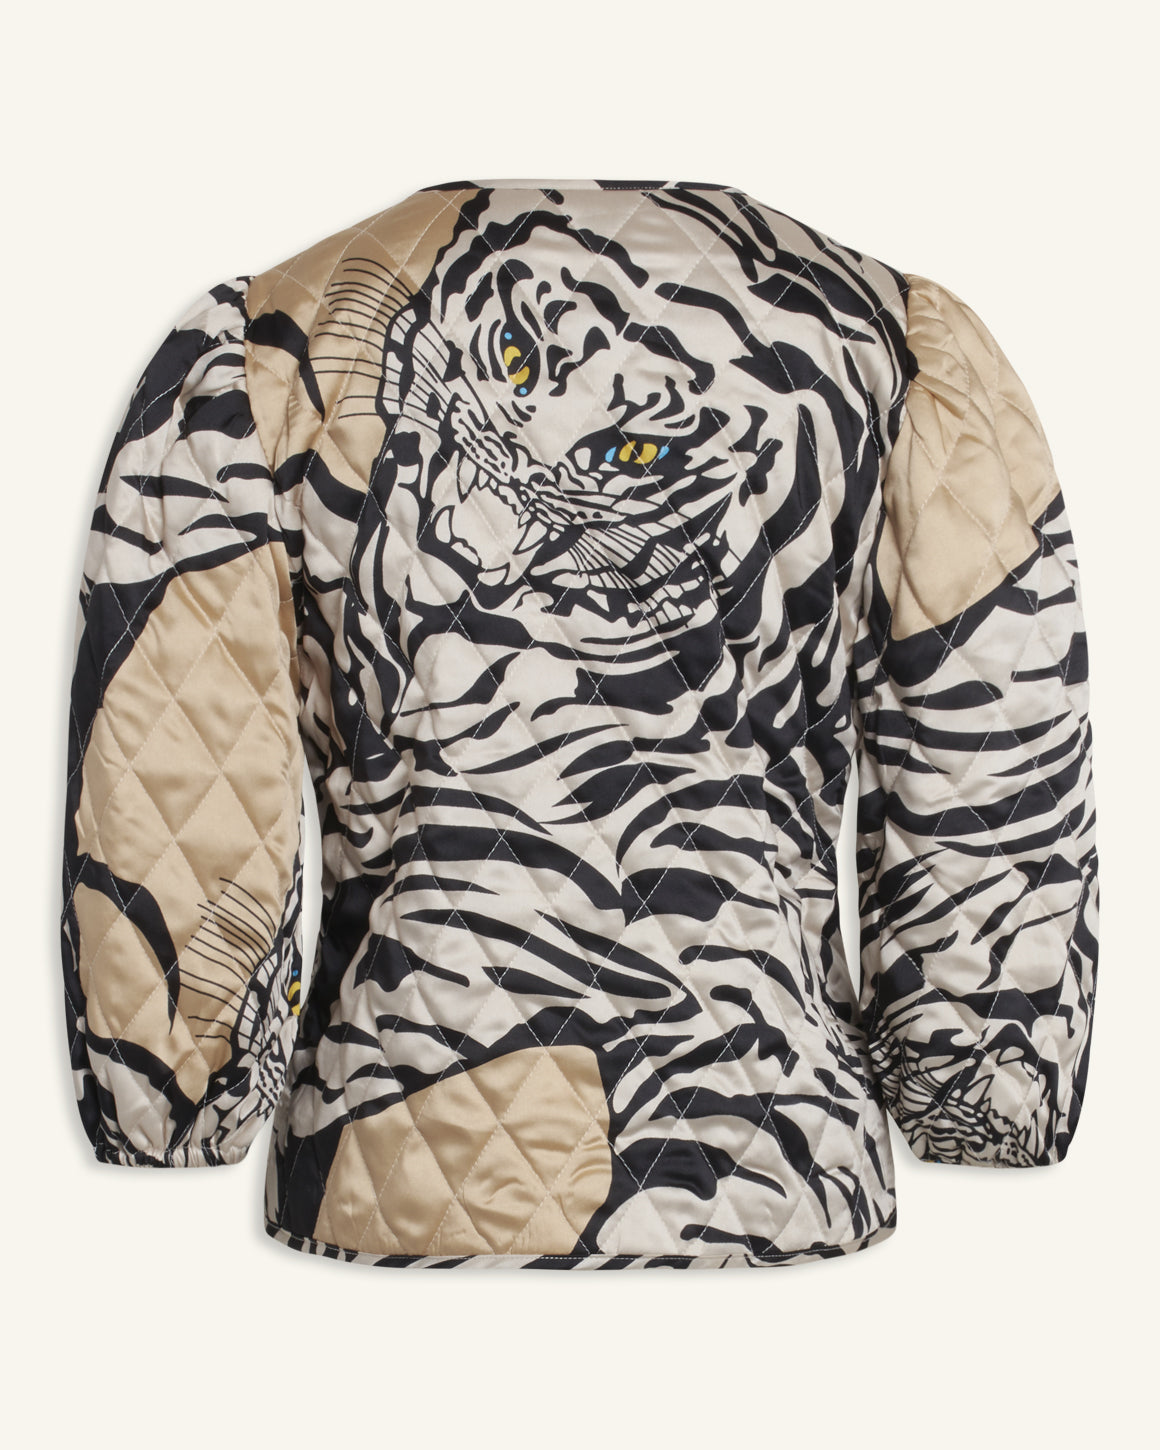 LOVE & DIVINE - Jacket, Tiger print